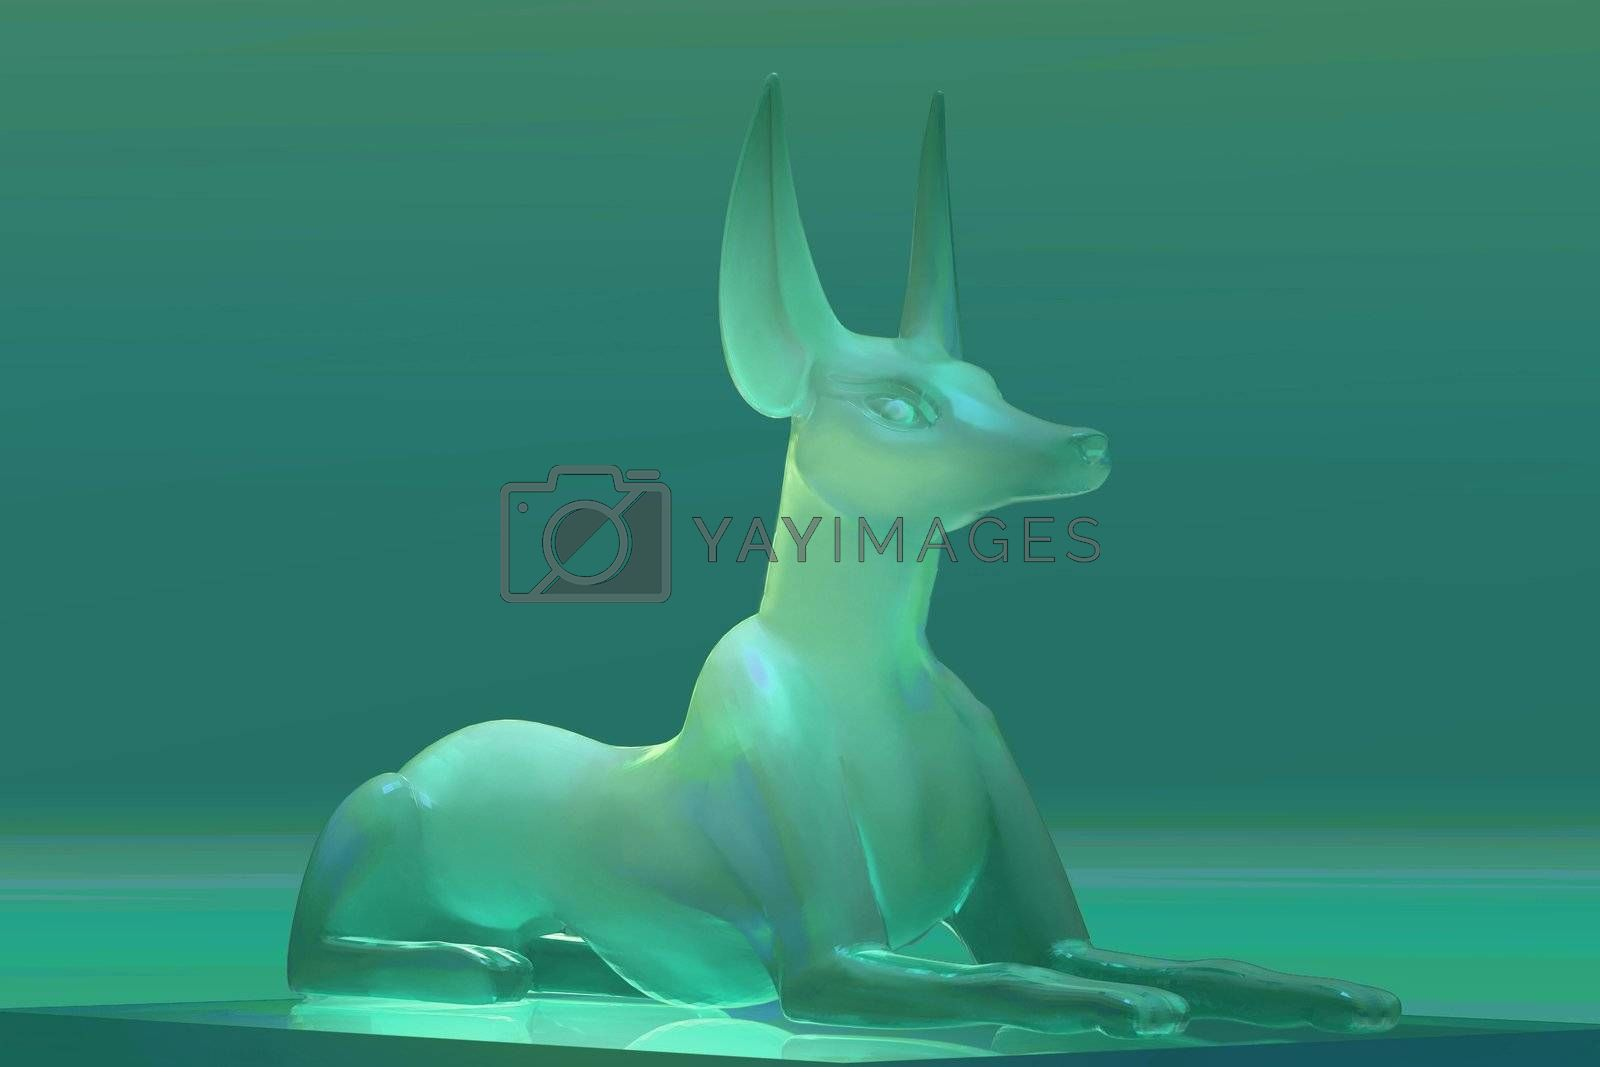 Glass statue of the Egyptian god Anubis.